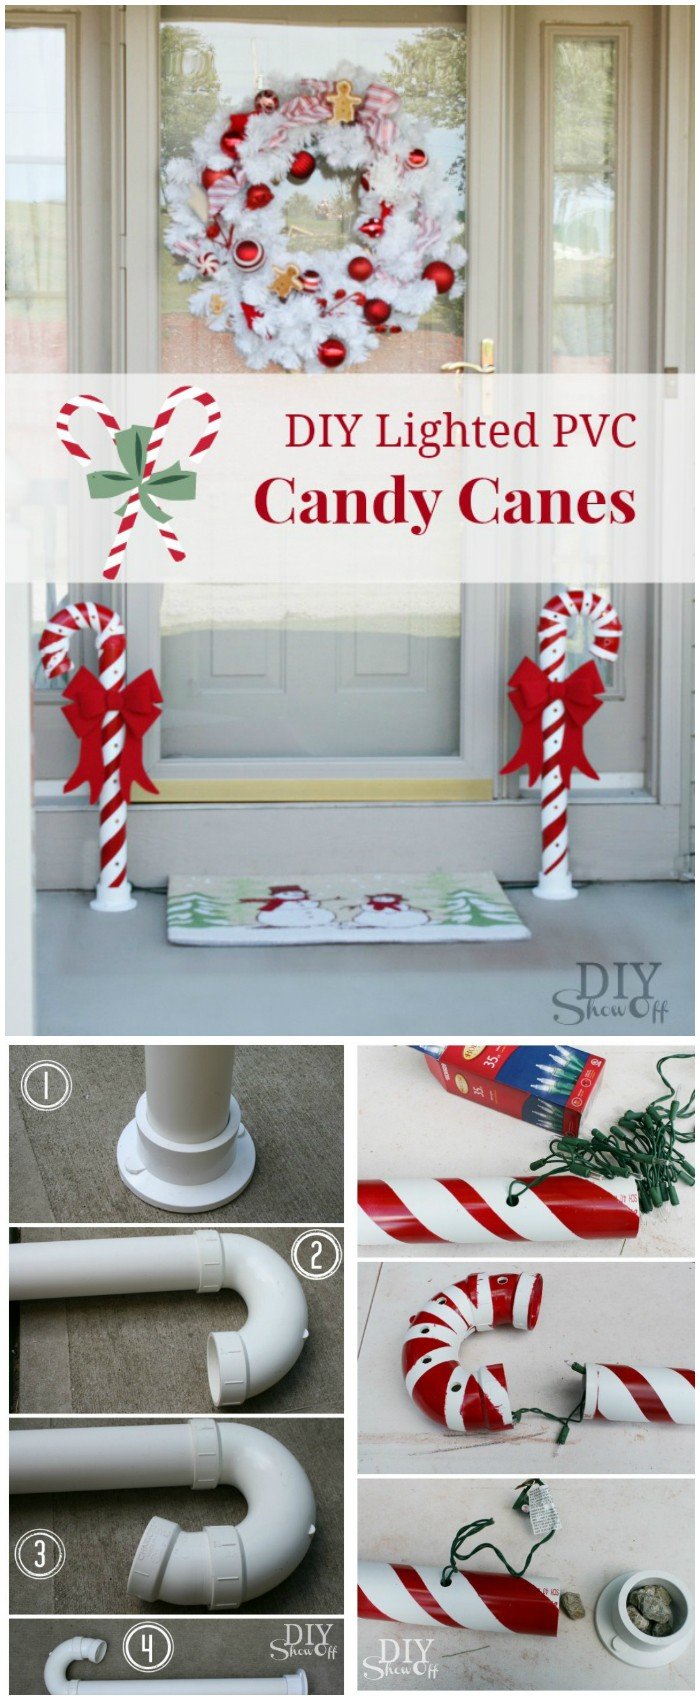 DIY Lighted PVC Candy Canes